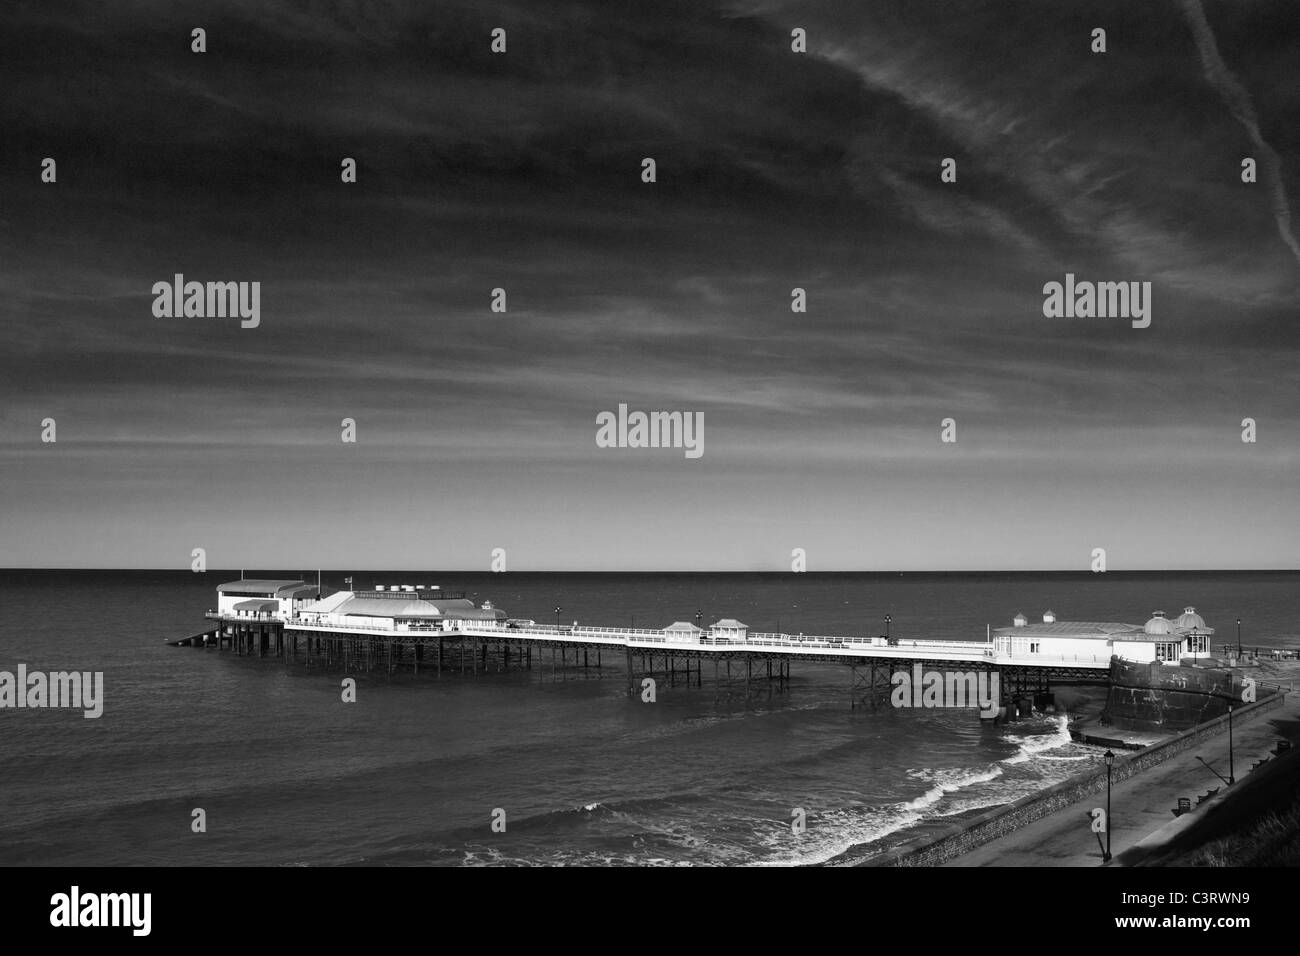 This is an image of Cromer Pier on the north Norfolk coast, England, UK. - Stock Image